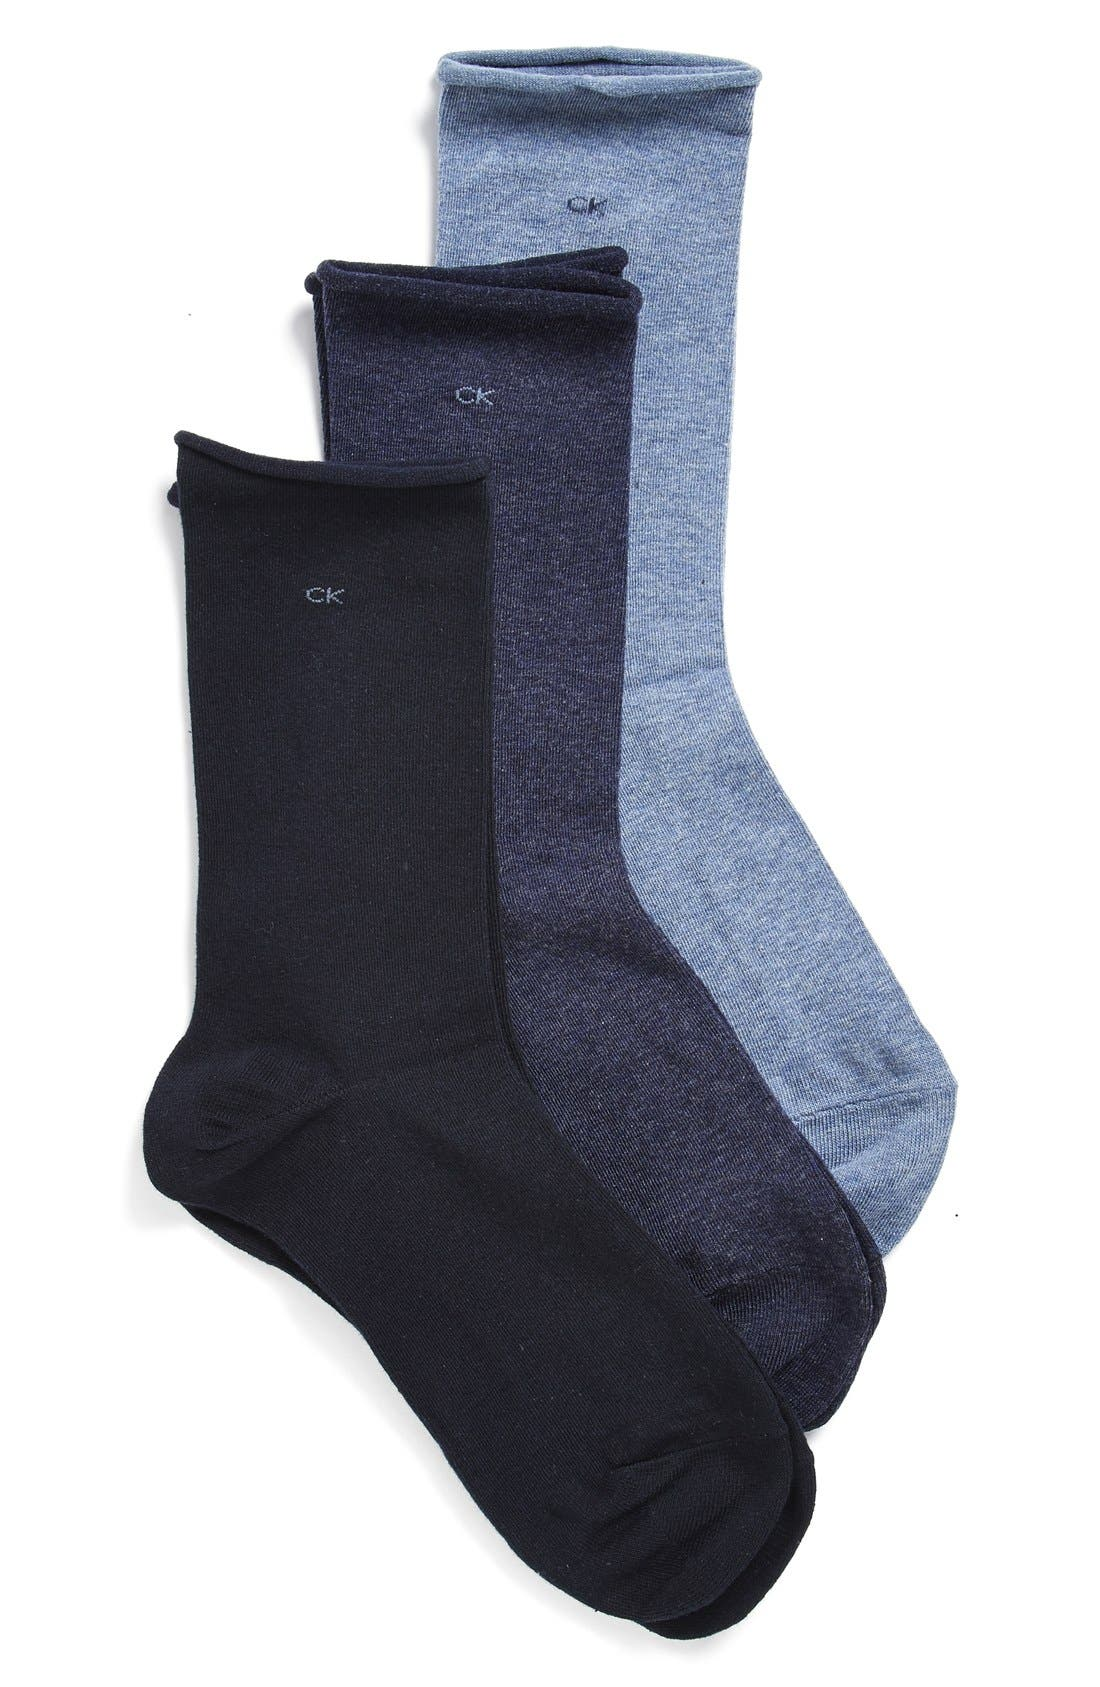 Main Image - Calvin Klein Roll Top Crew Socks (3-Pack)